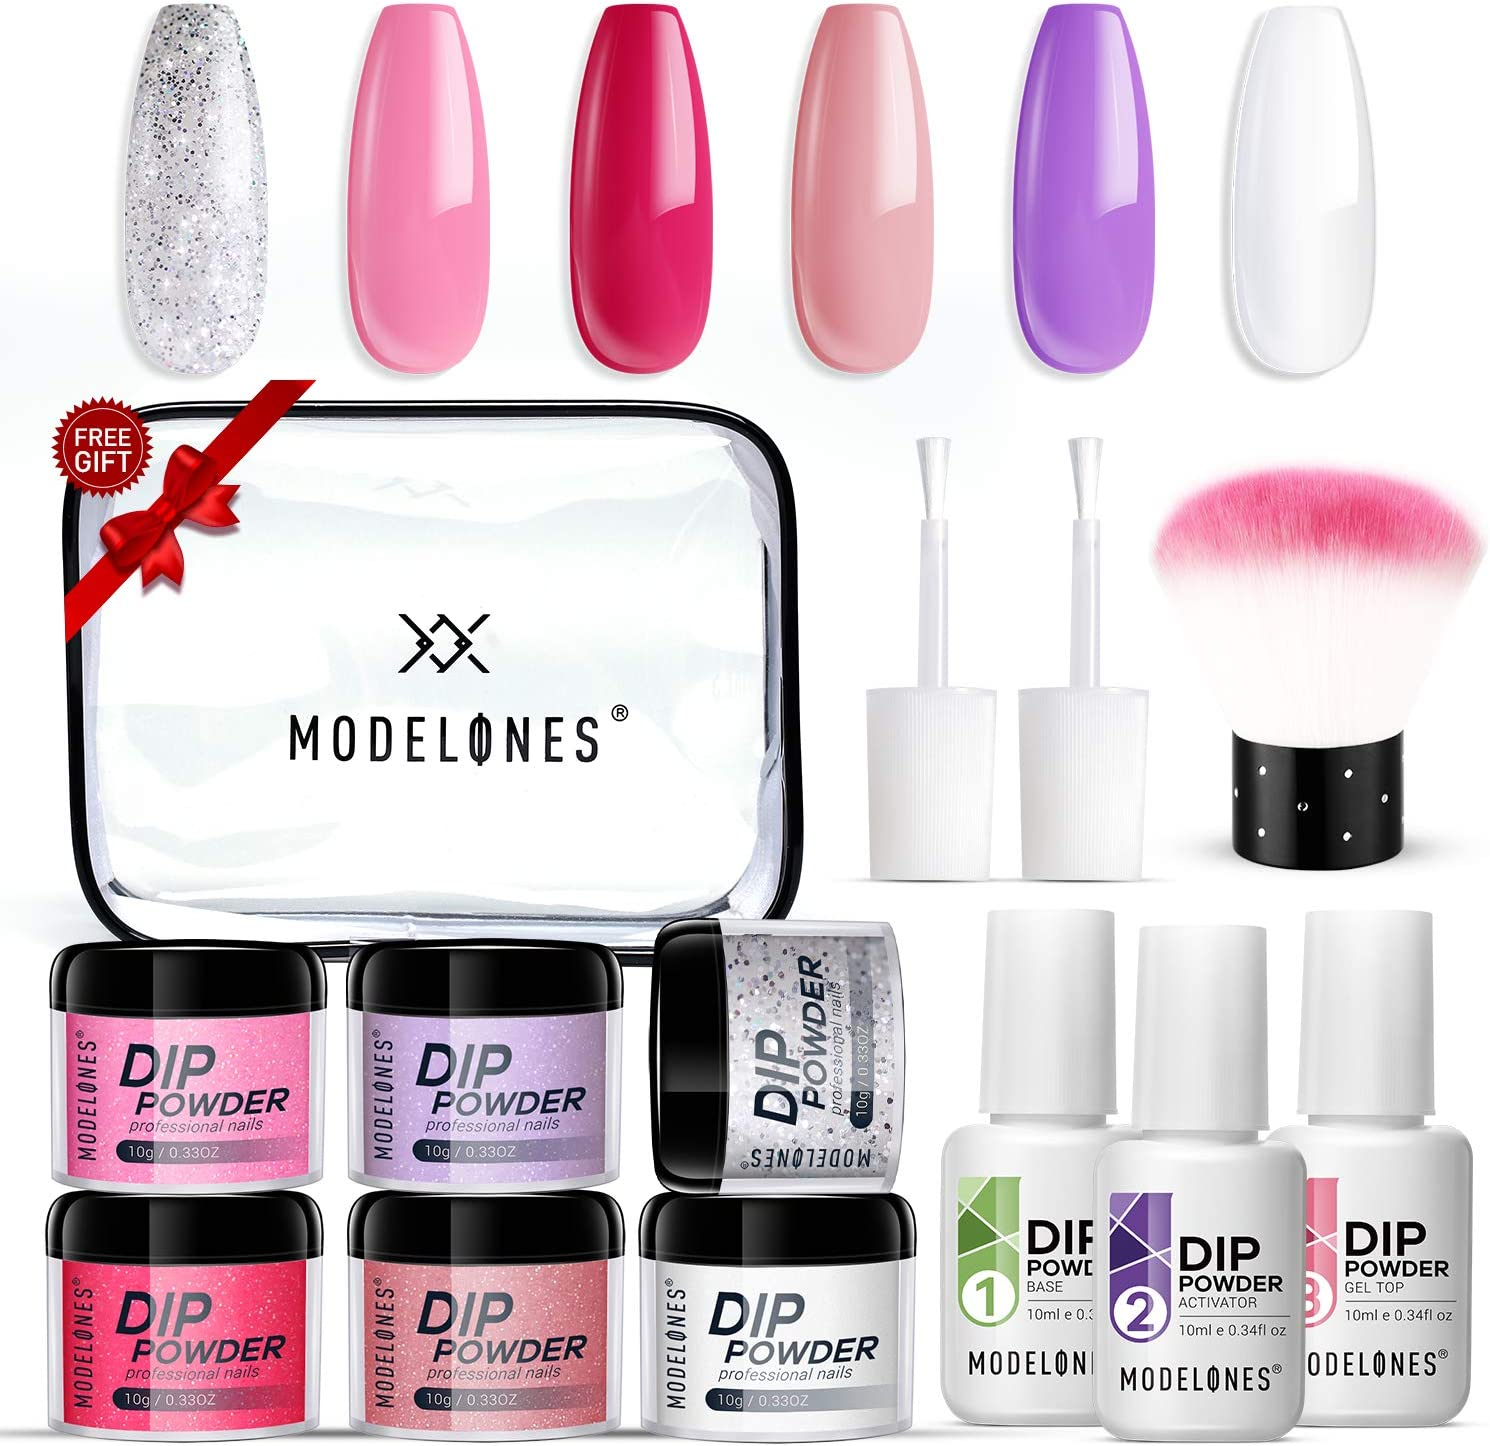 Dipping Powder Nail Starter Kit 6 Colors,Dip Powder System Starter Nail Kit Acrylic Dipping System for French Nail Manicure Nail Art Set Essential kit,Portable Kit for Travel